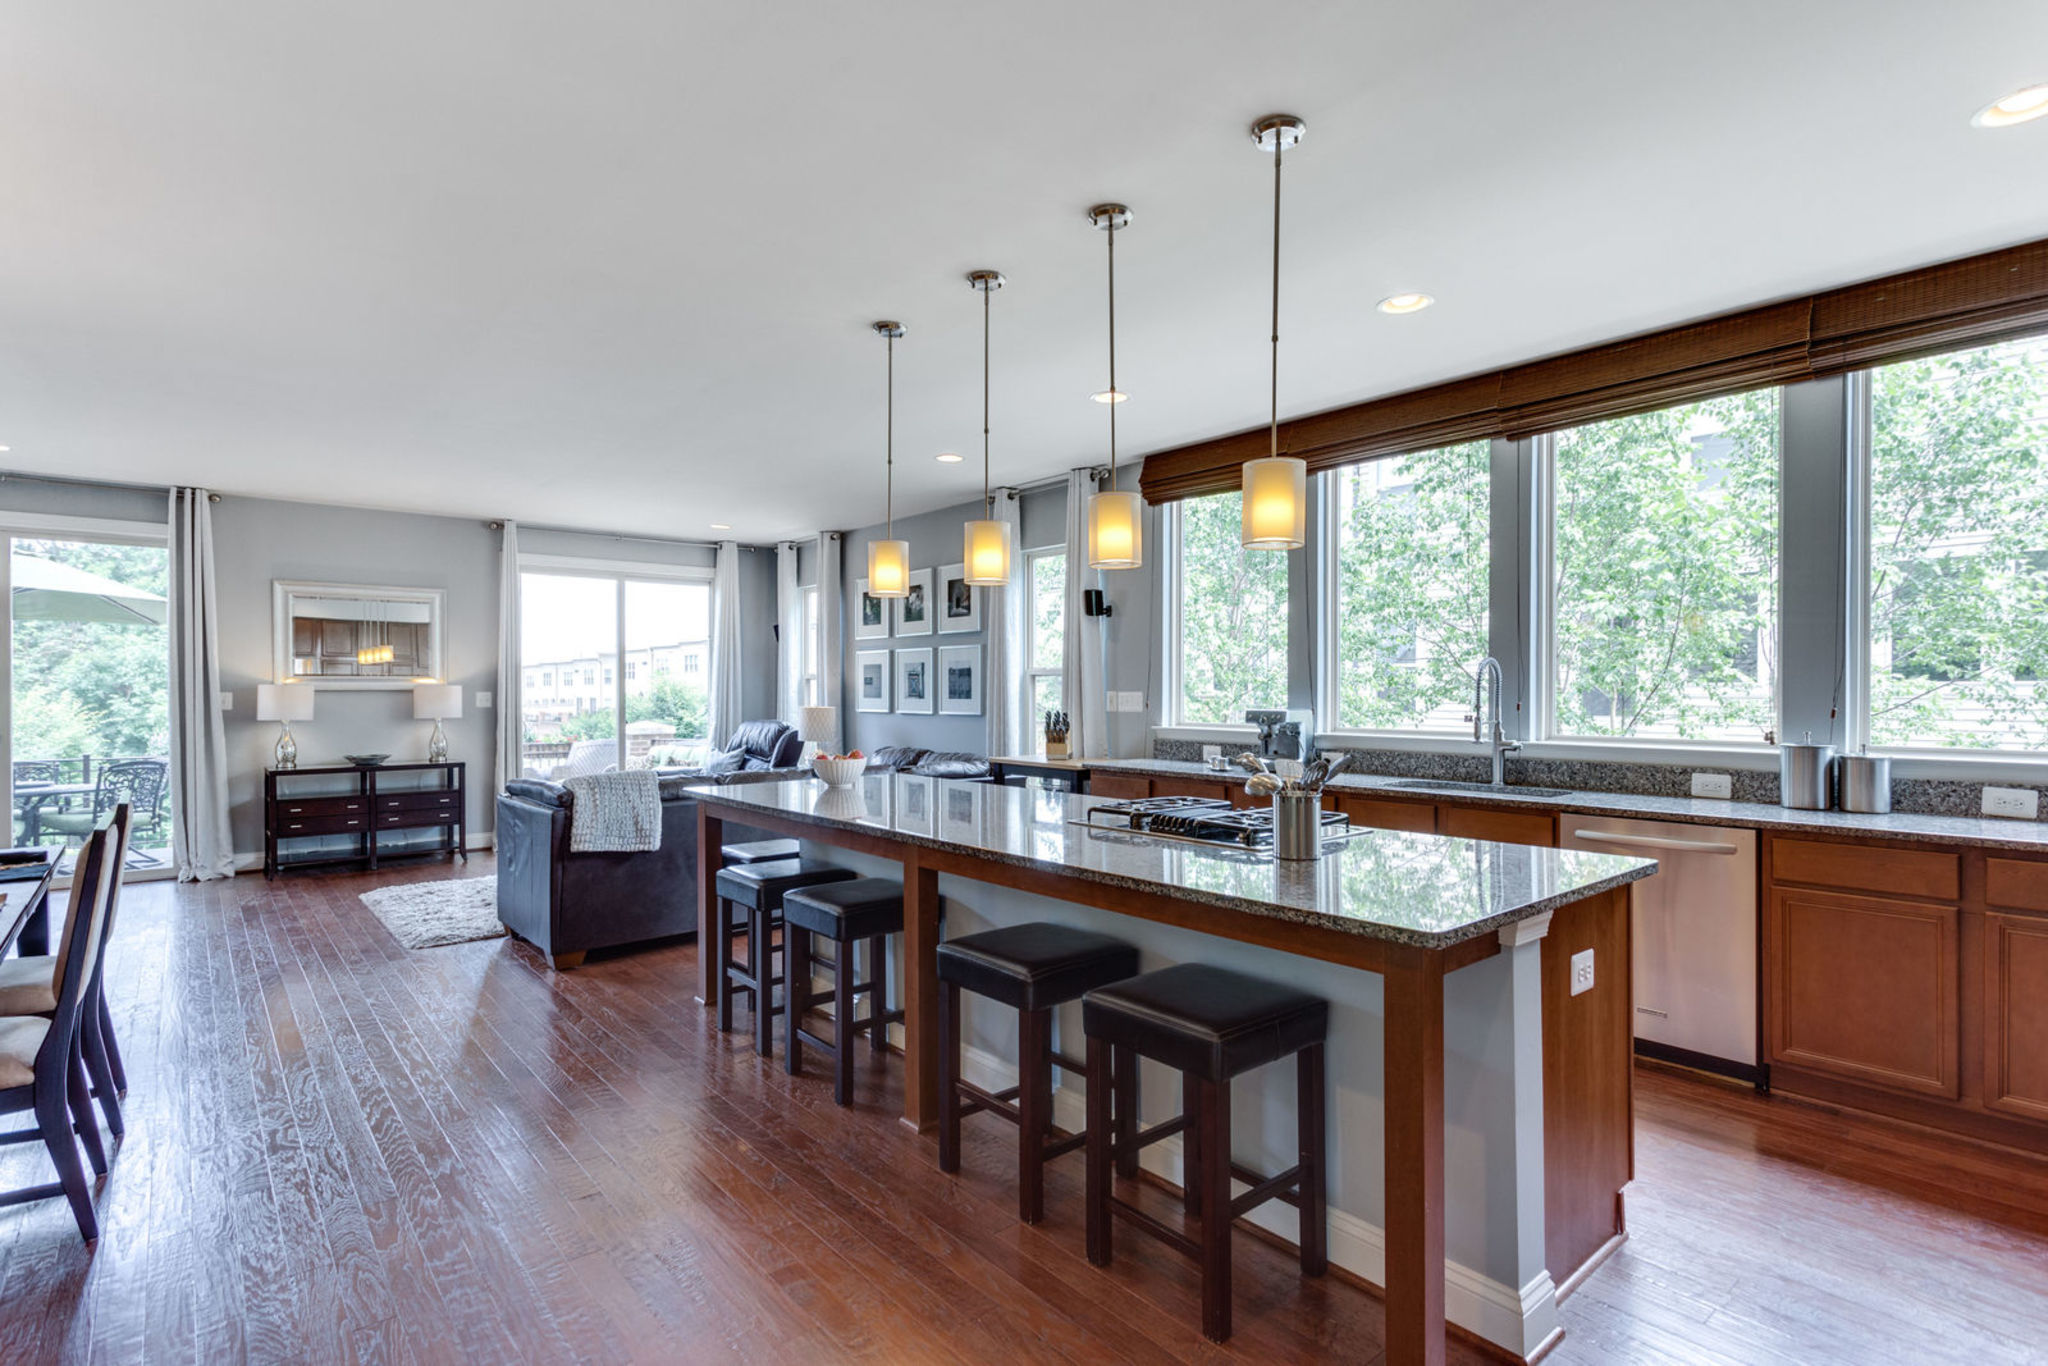 Luxury Townhouse For Sale in Brambleton